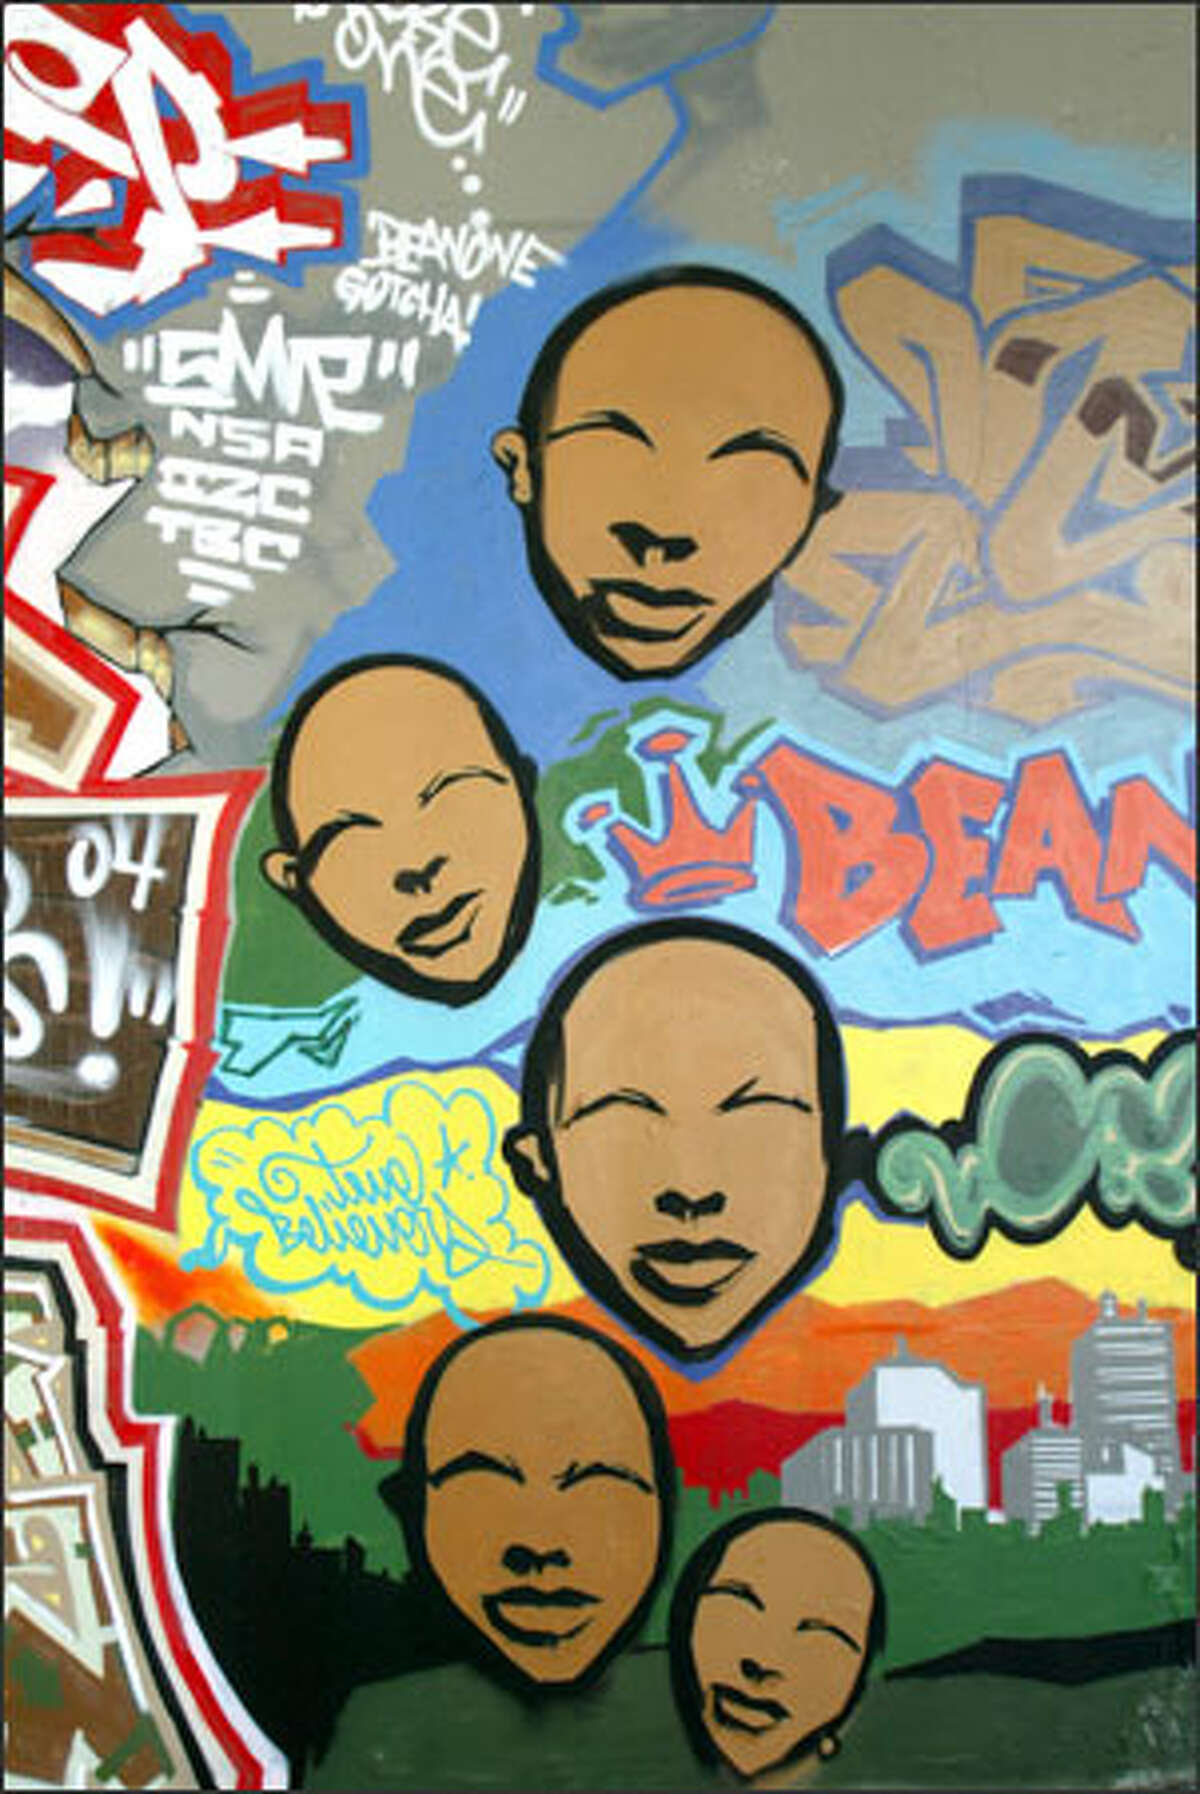 This section of the mural is part of the artwork that some city officials say is just graffiti and ought to be removed.